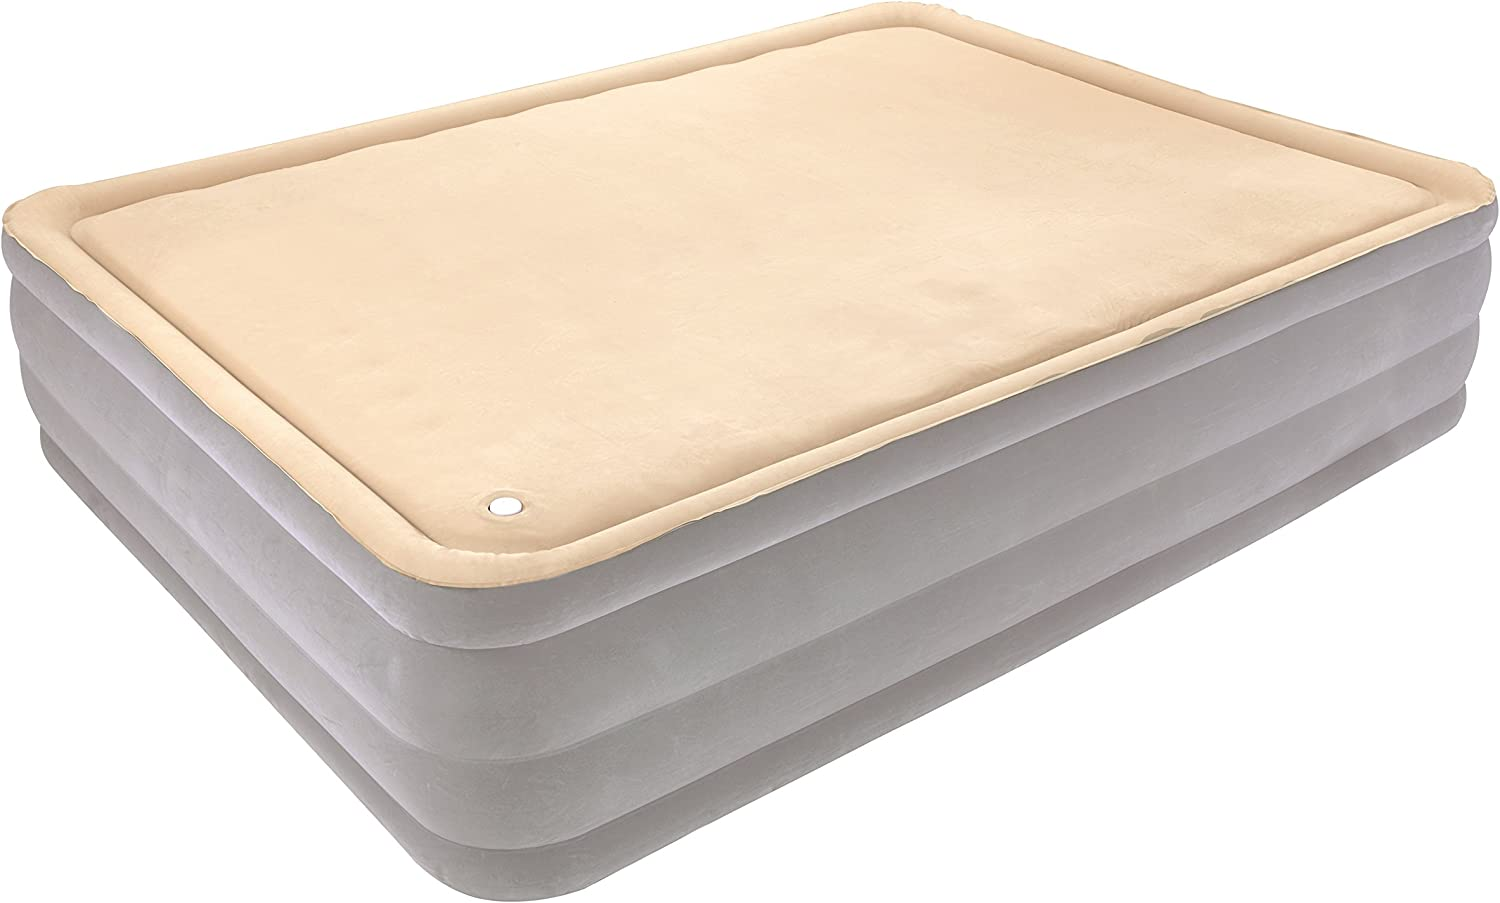 Bestway Foamtop Comfort Raised Air Bed